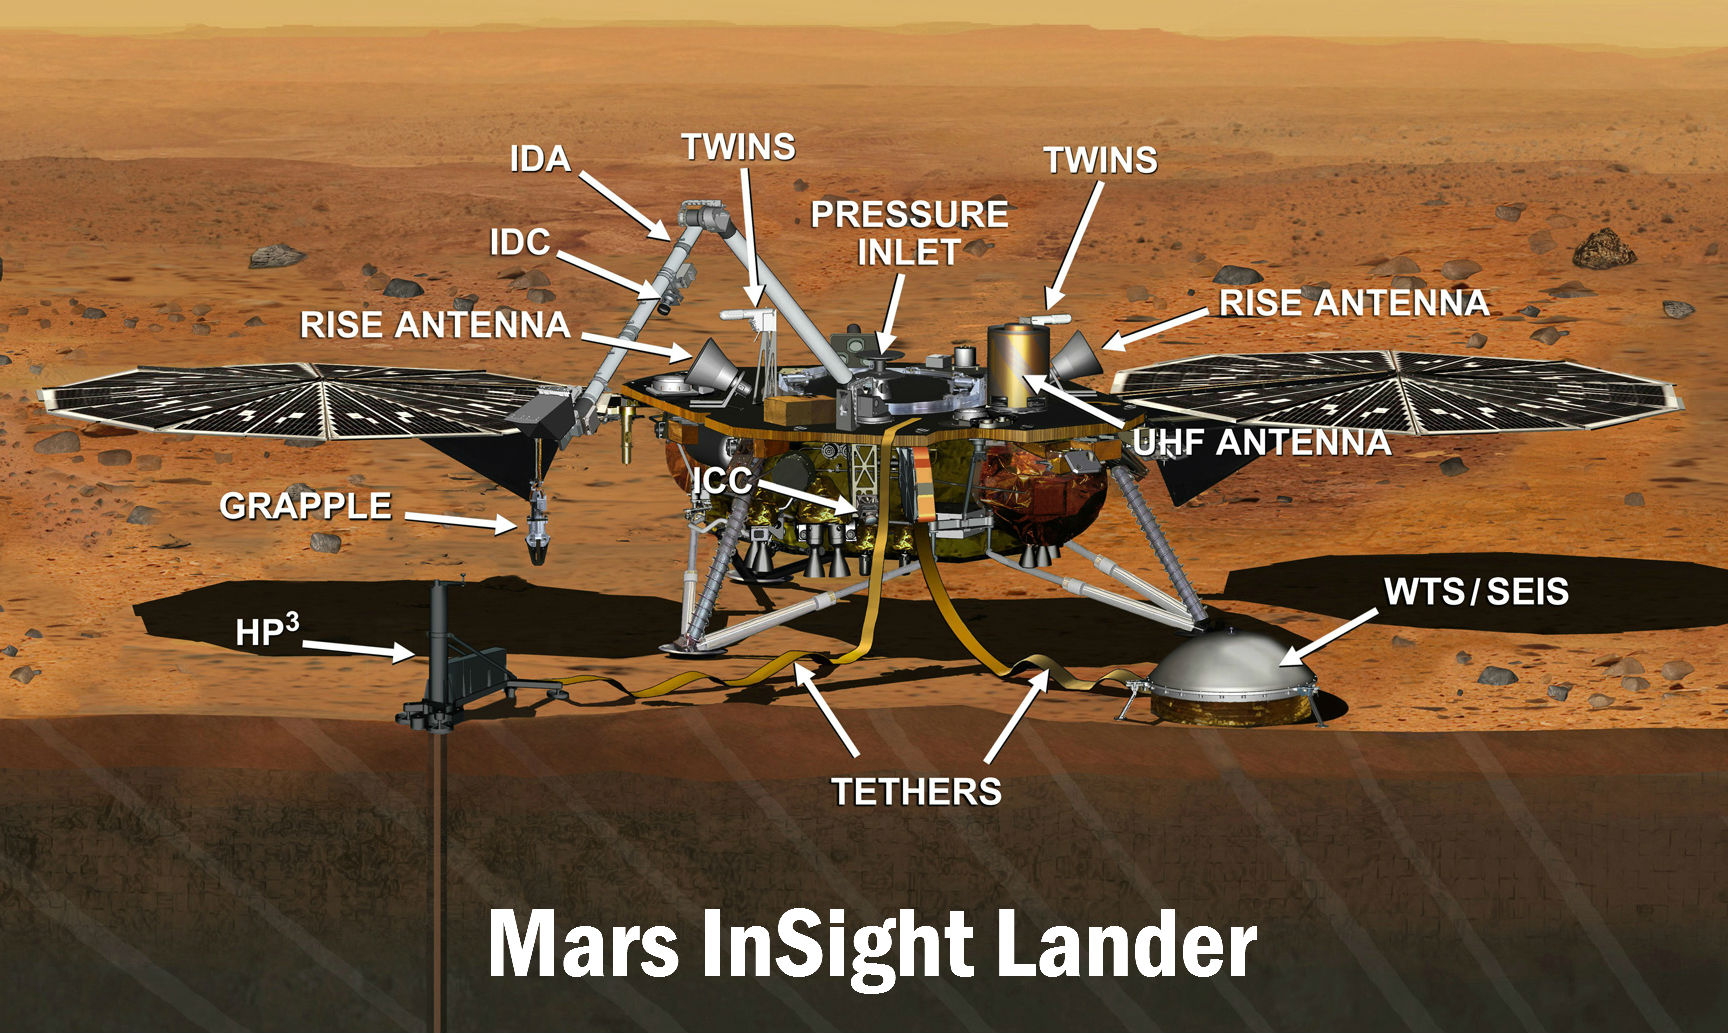 mars rover insight photos - photo #11